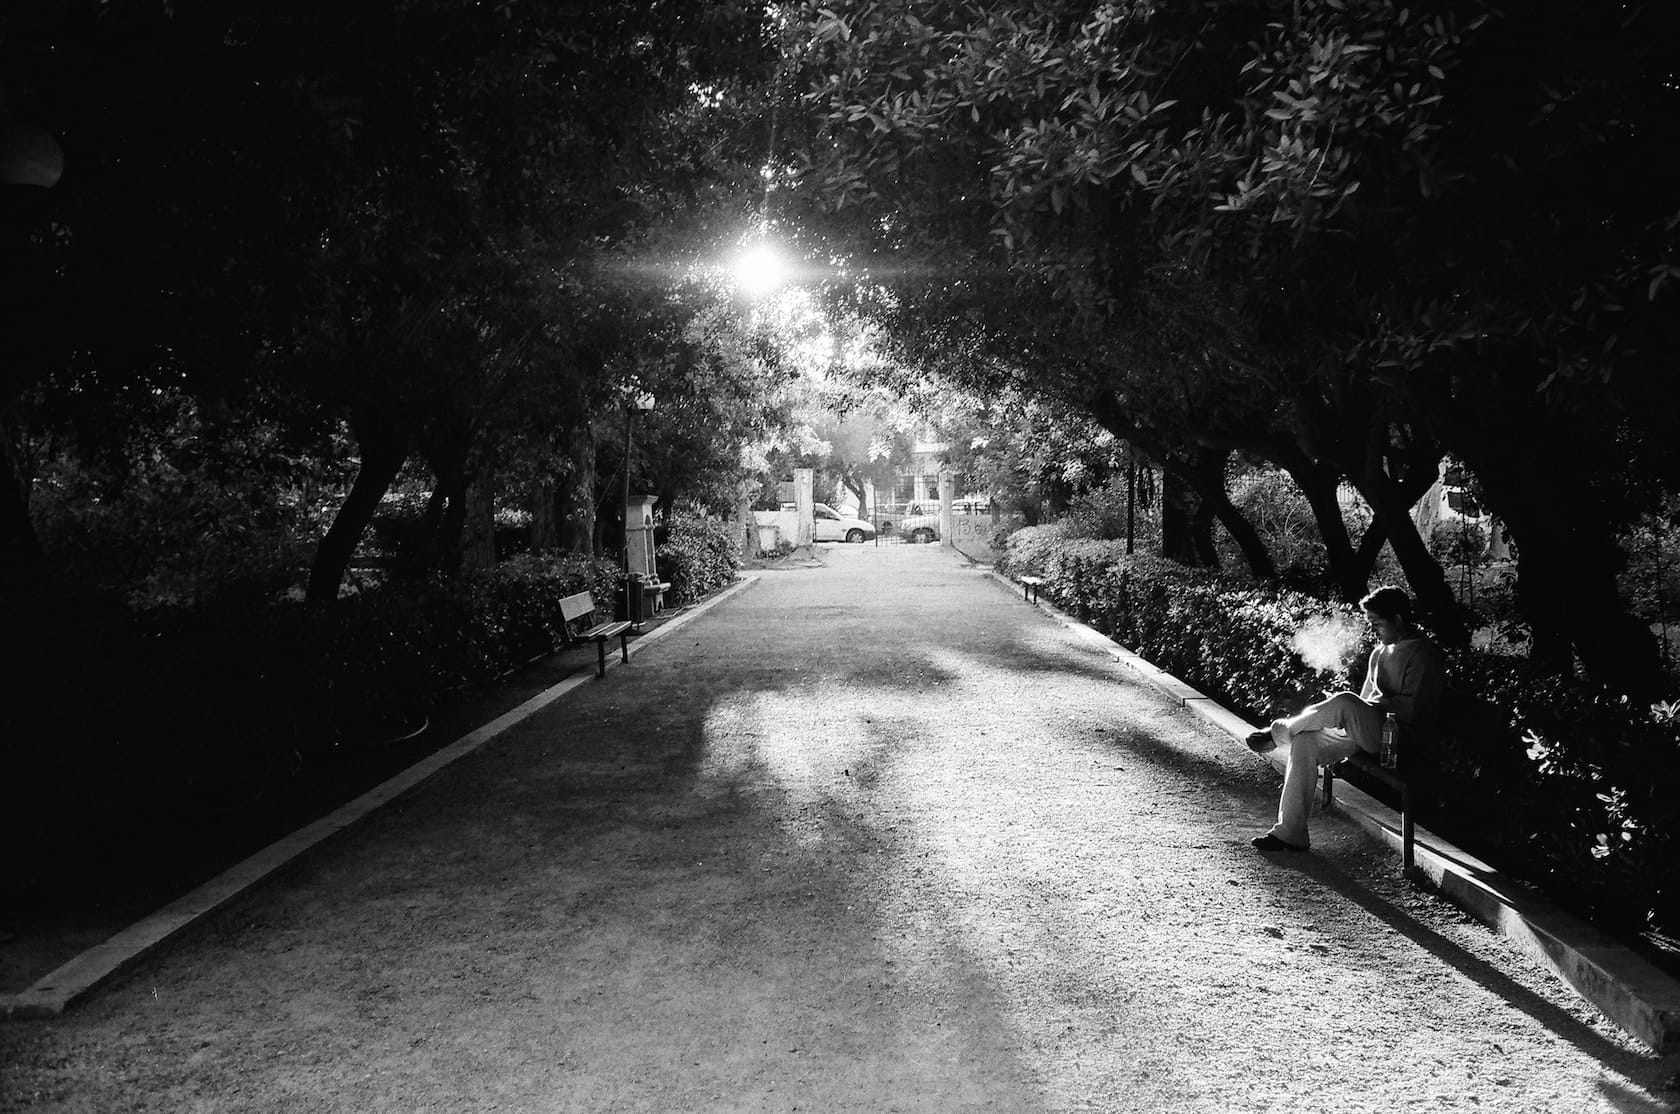 film-TMAX100-CC-a smoke in the park